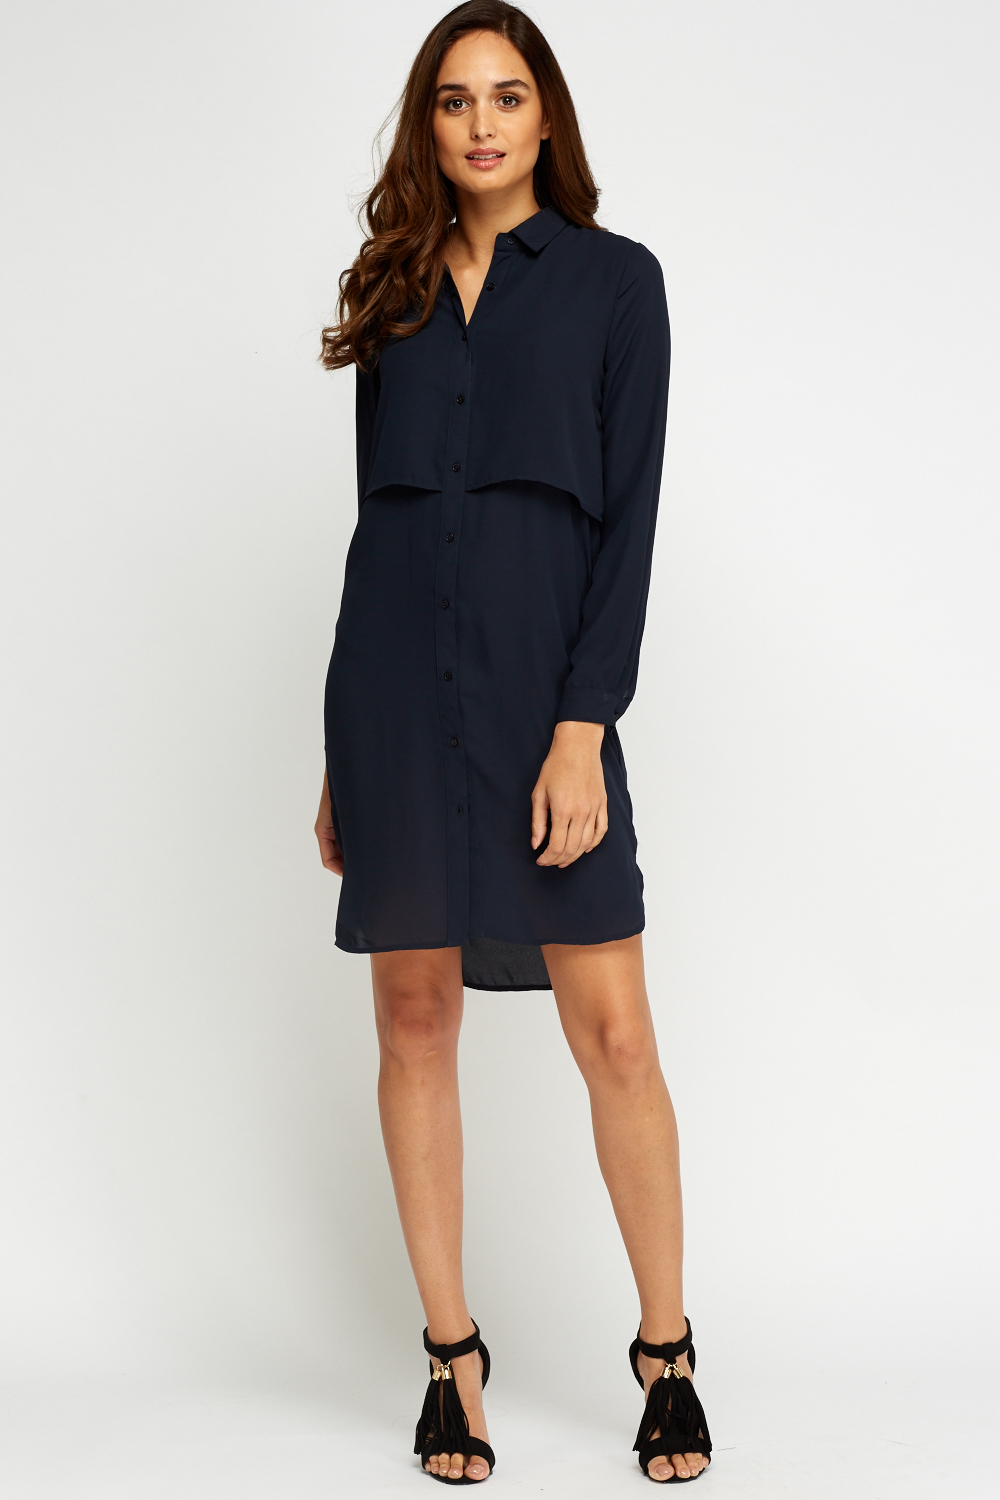 Dip Hem Casual Shirt Dress Navy Just 163 5